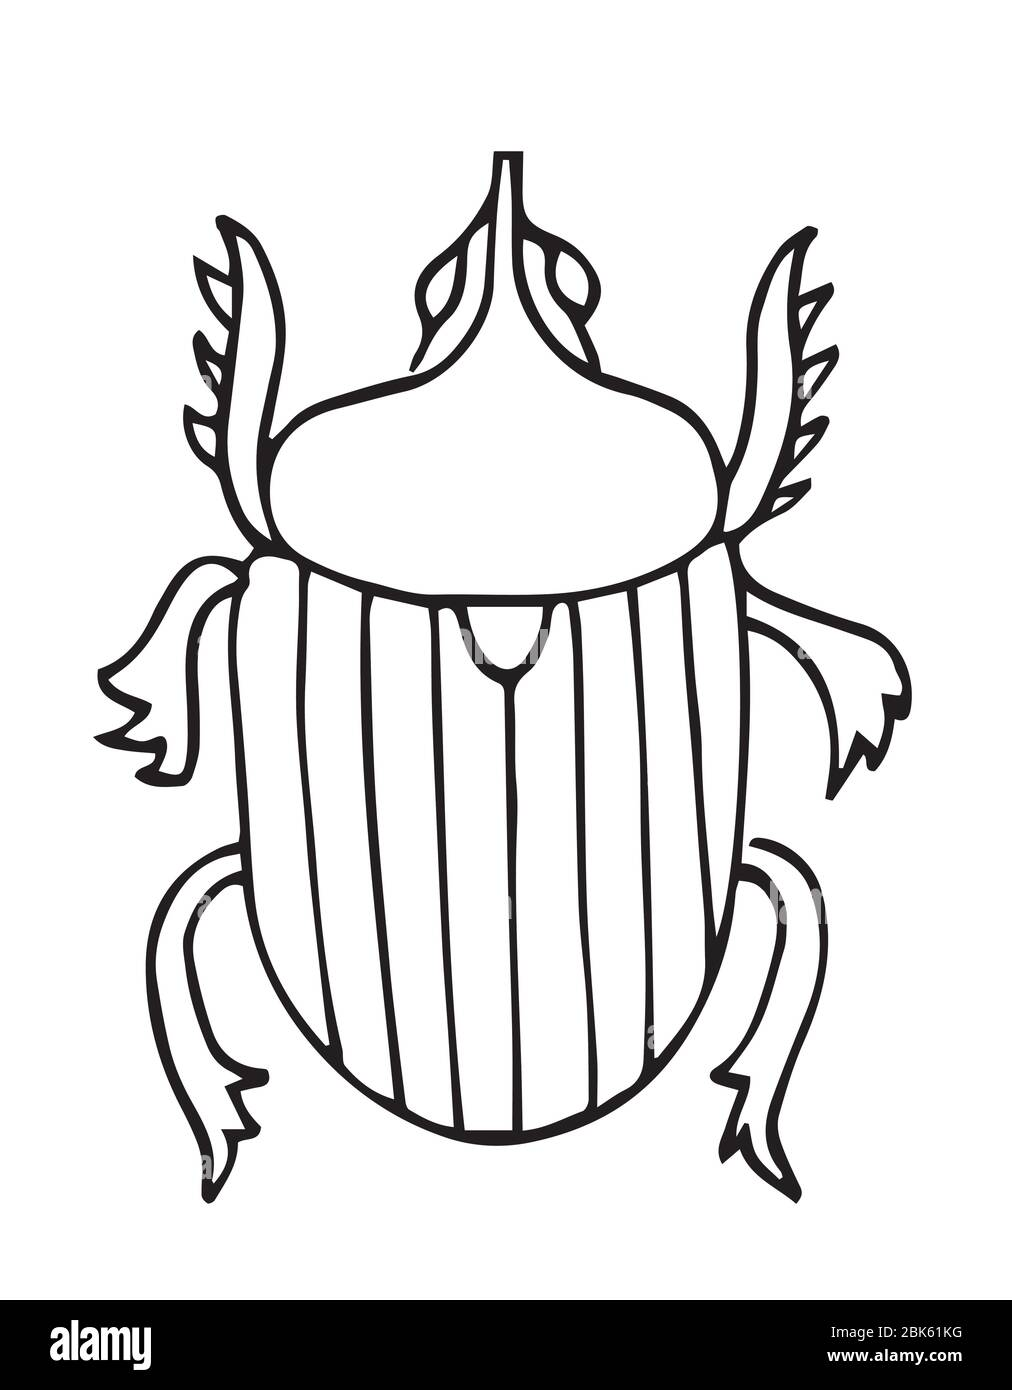 Centipede coloring pages | Free Coloring Pages | 1390x1012